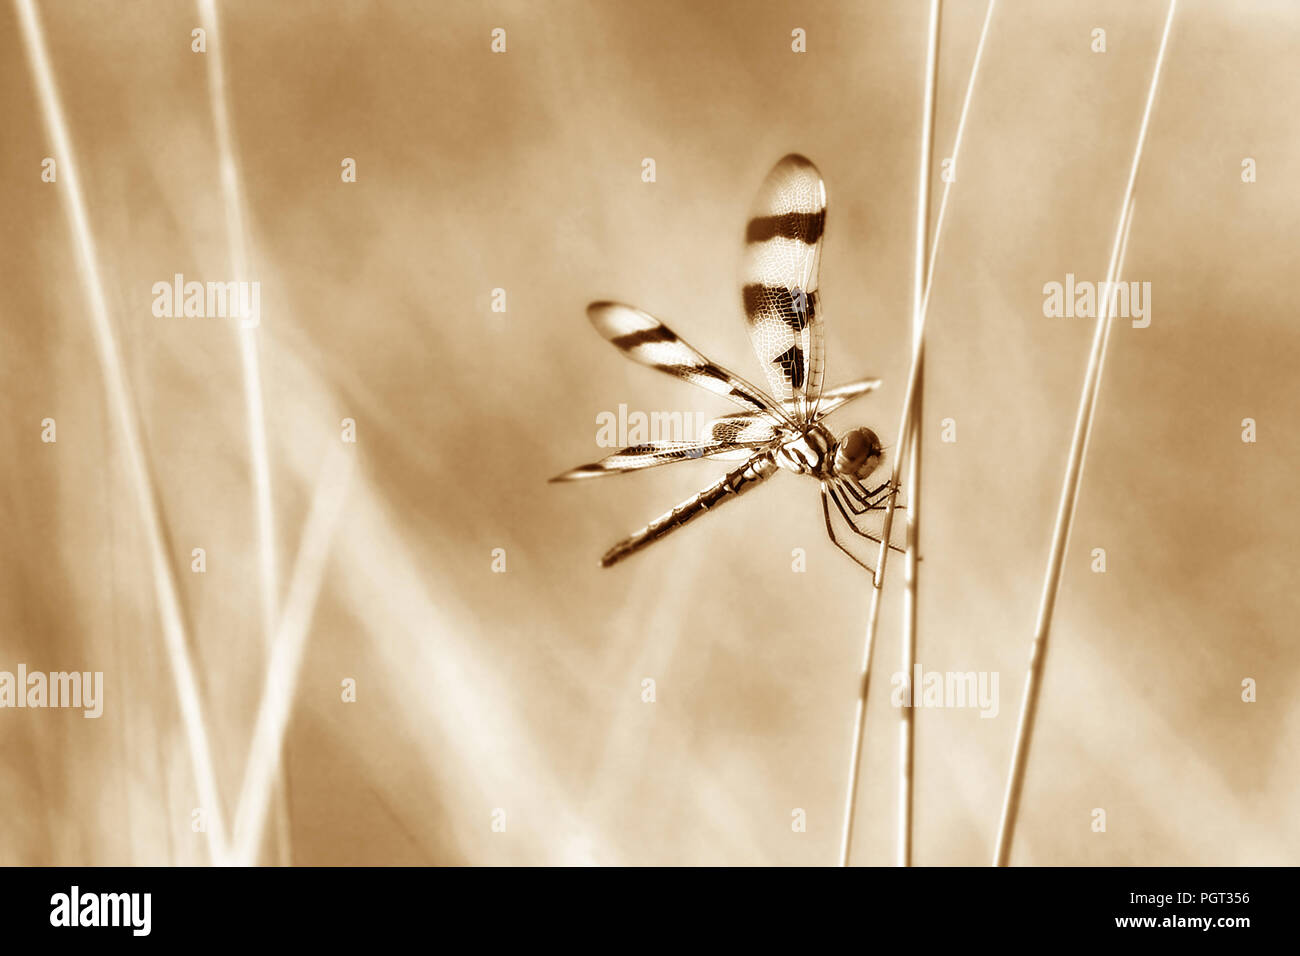 Dragonfly perched on wild grasses in sepia tones Stock Photo